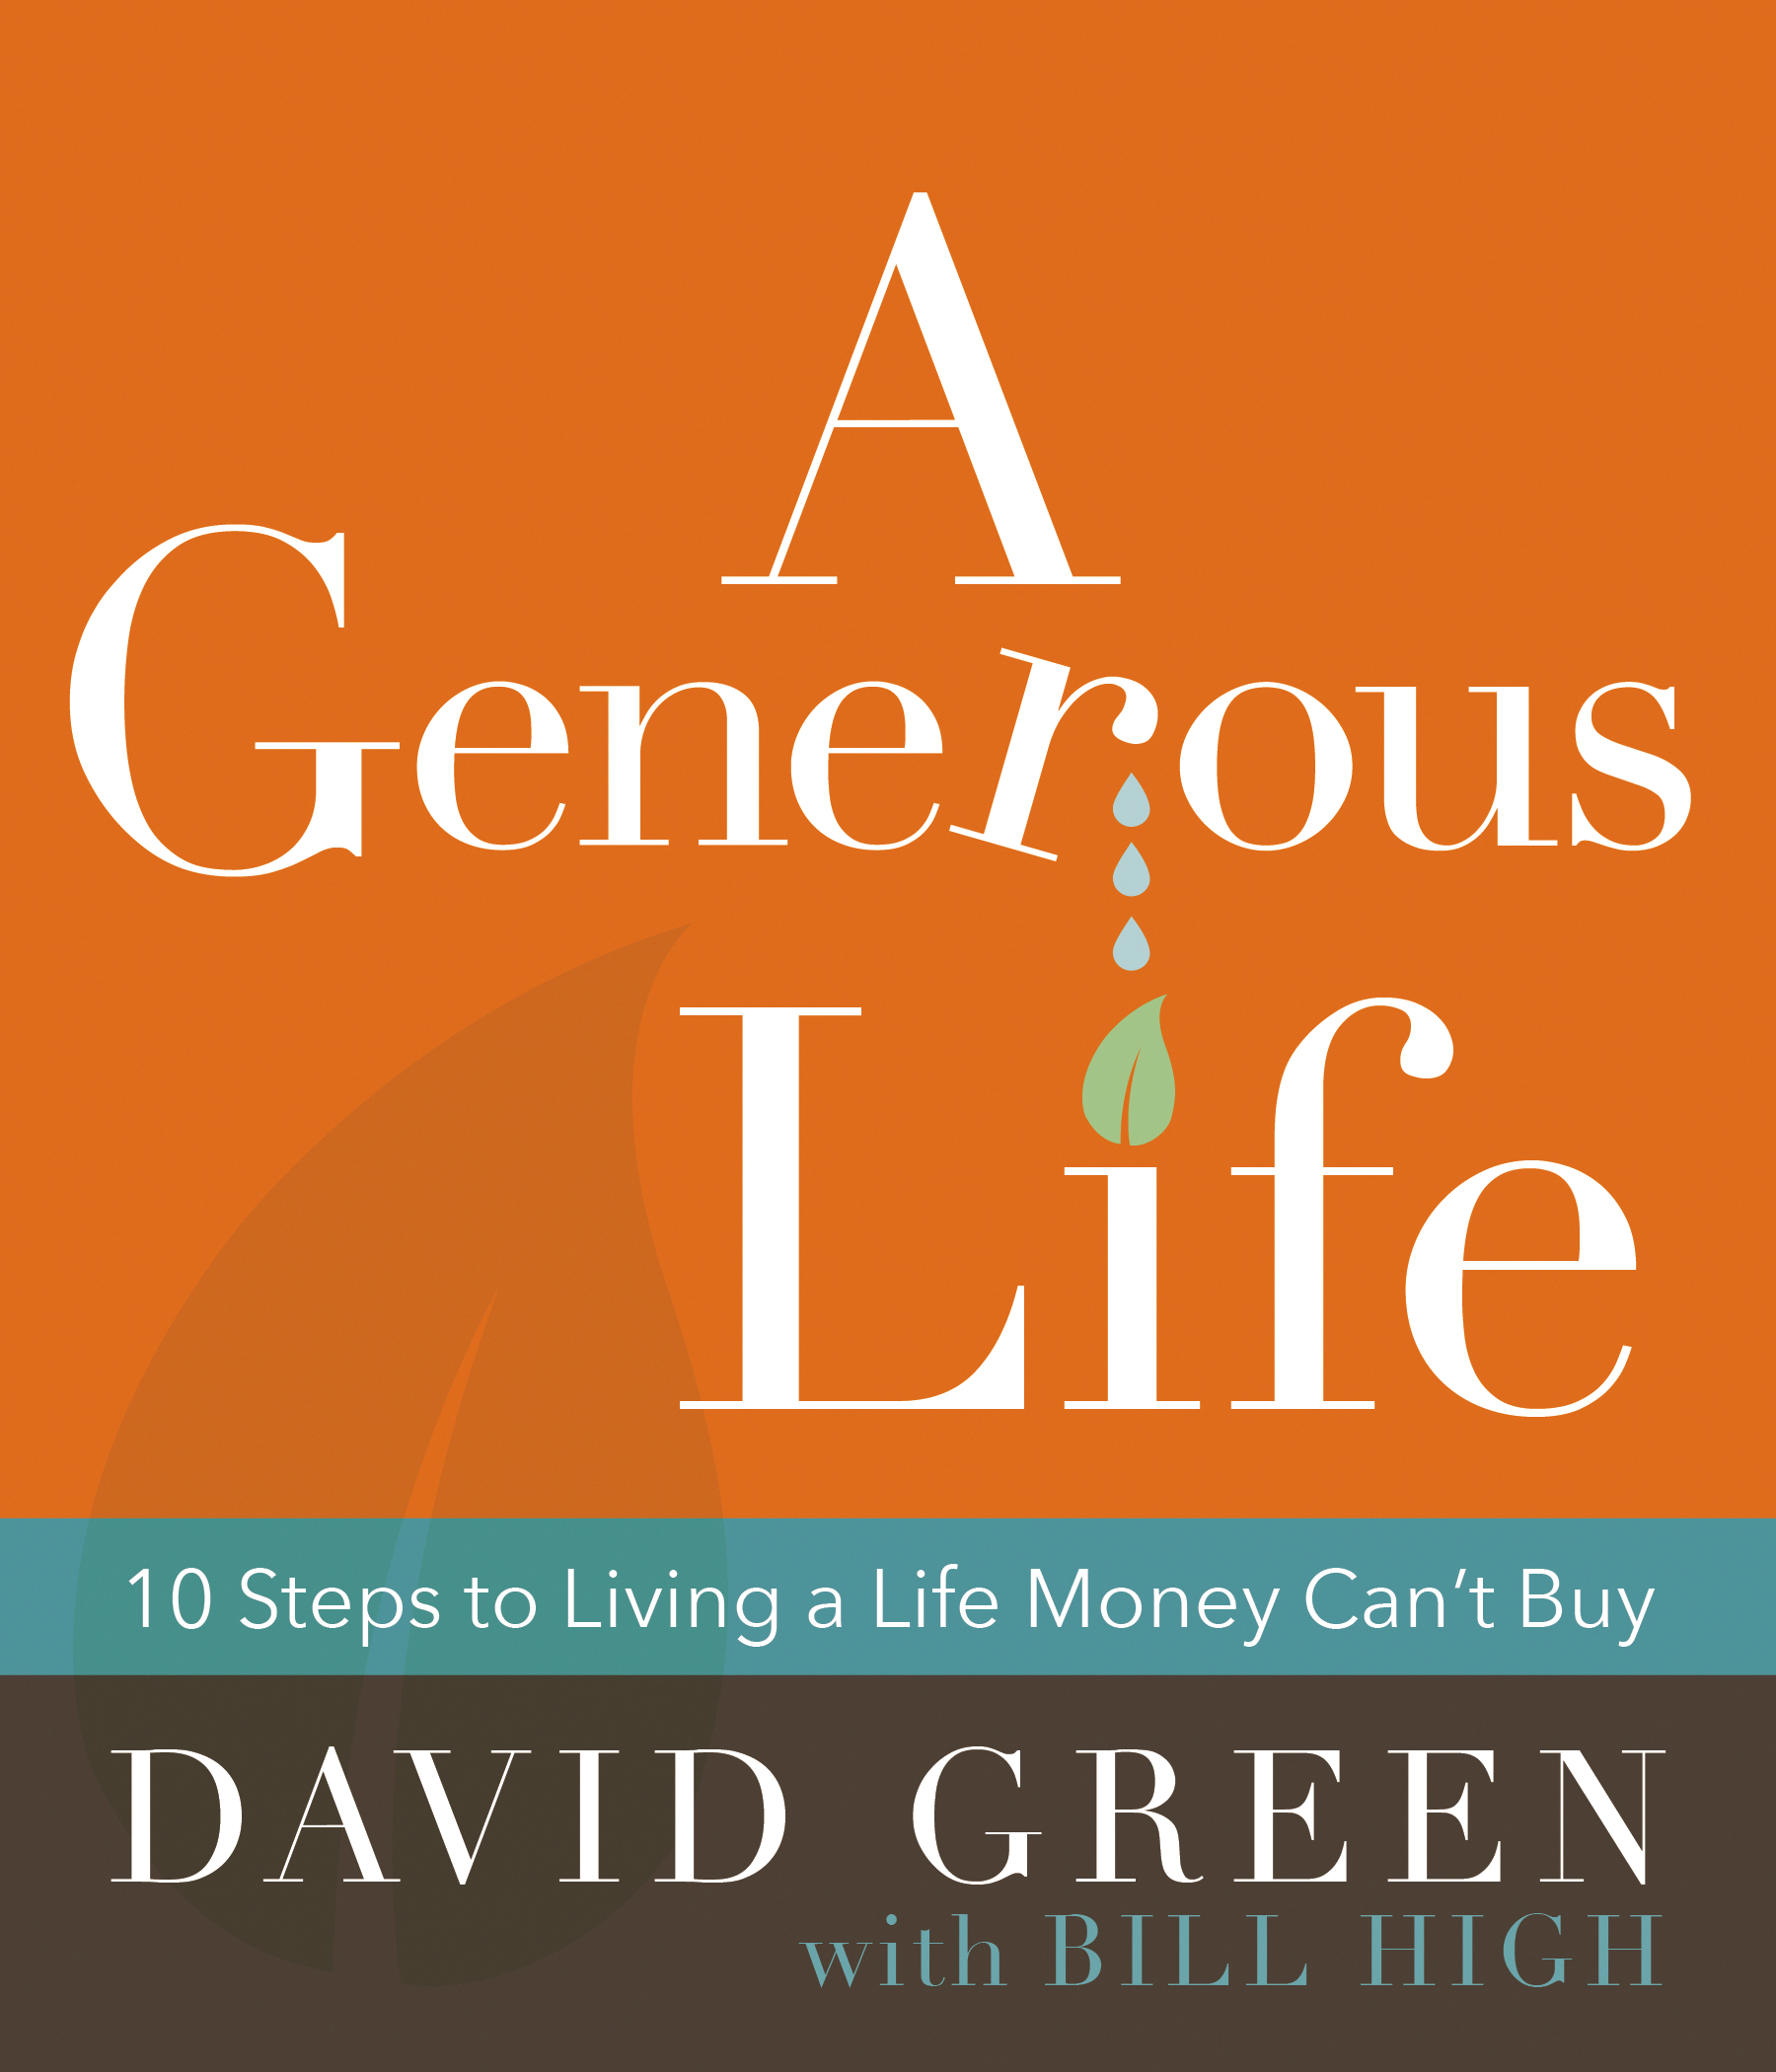 A Generous Life - David Green with Bill High